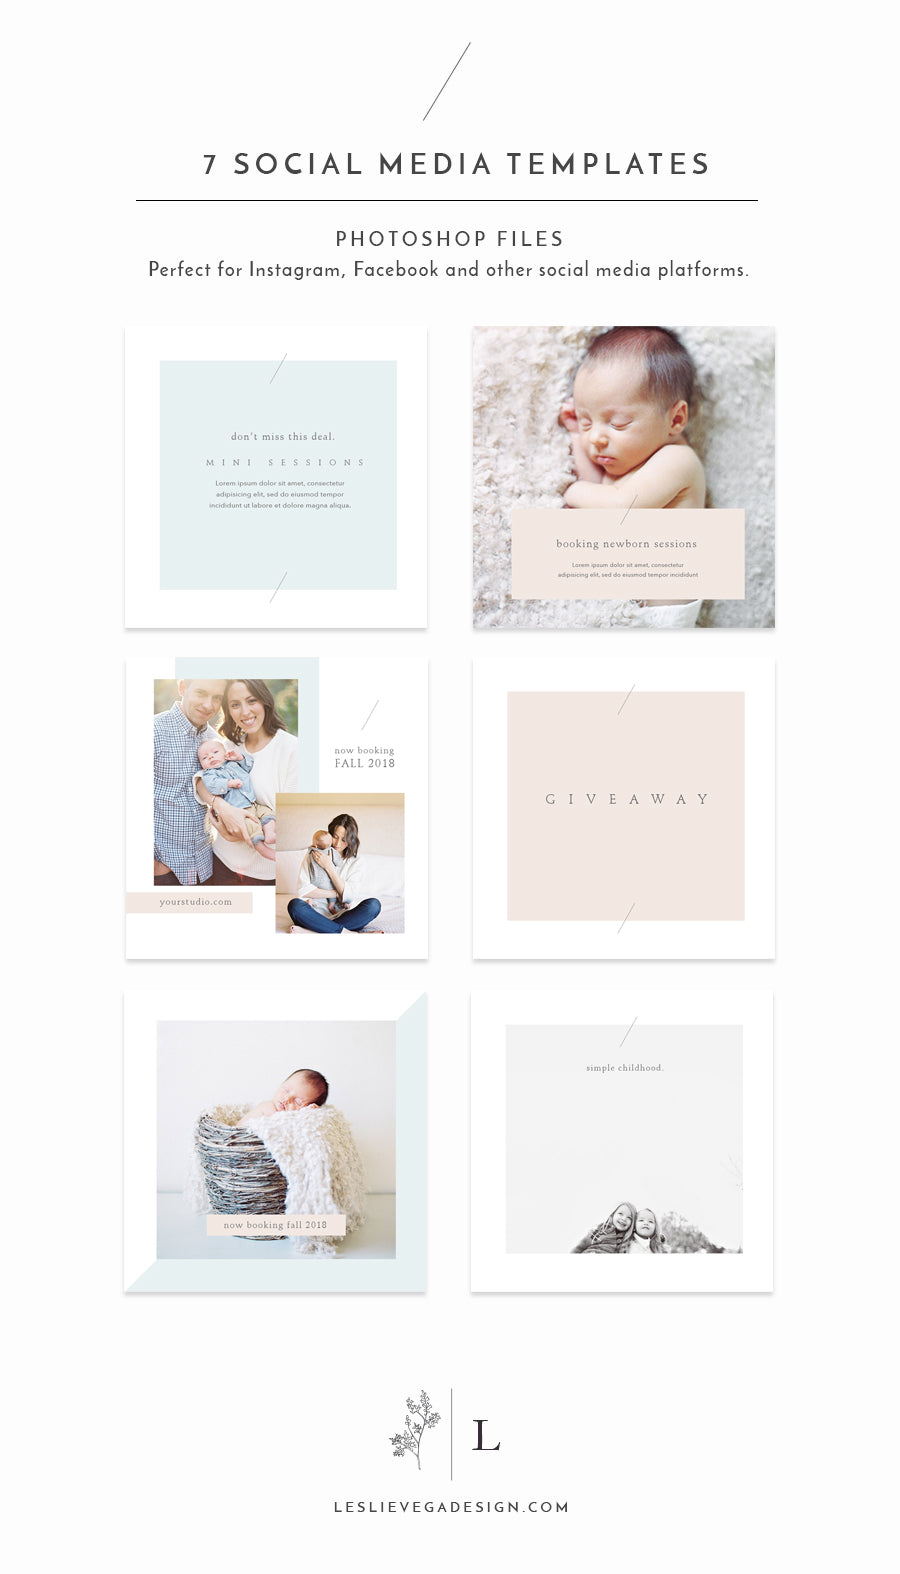 Instagram Social Media Photoshop Template - OLIVIA